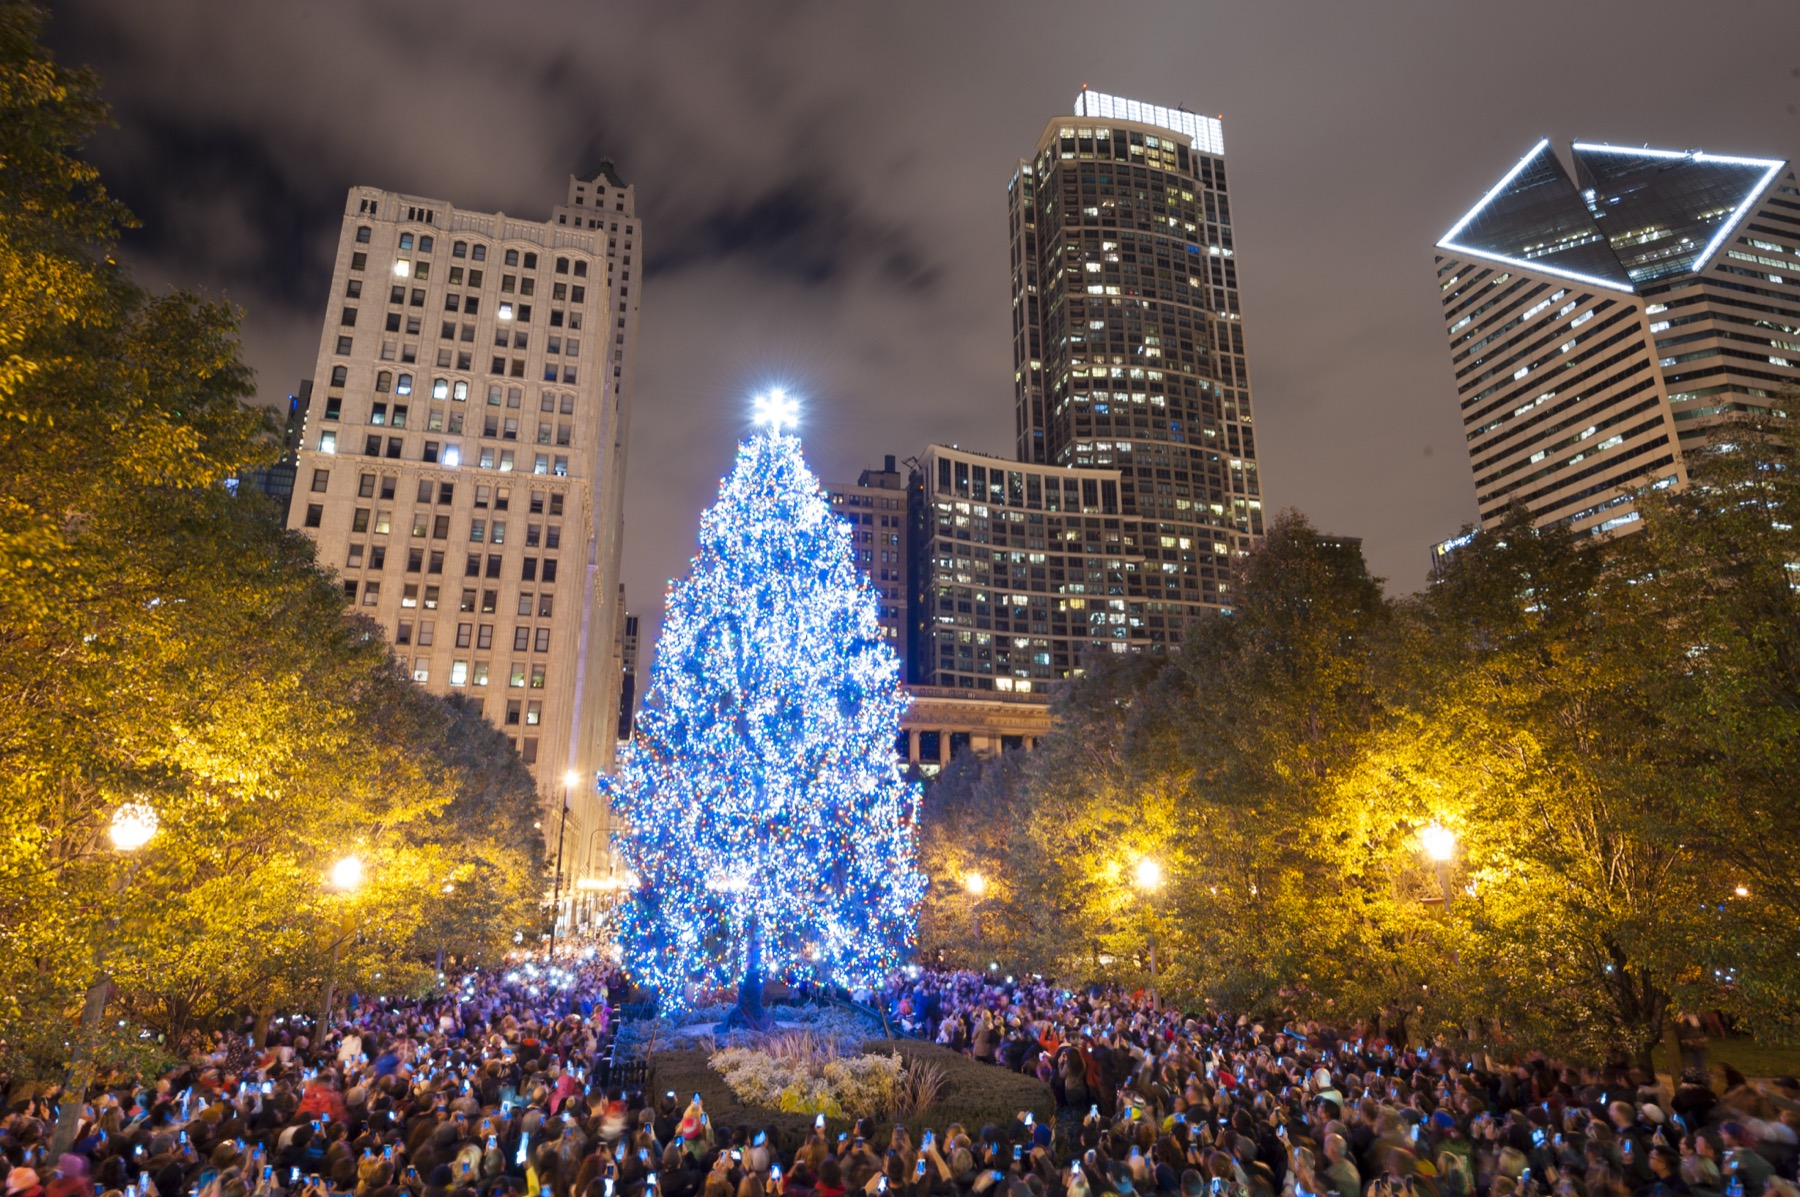 Chicago Christmas.City Of Chicago Christmas Tree Lighting 11 22 2019